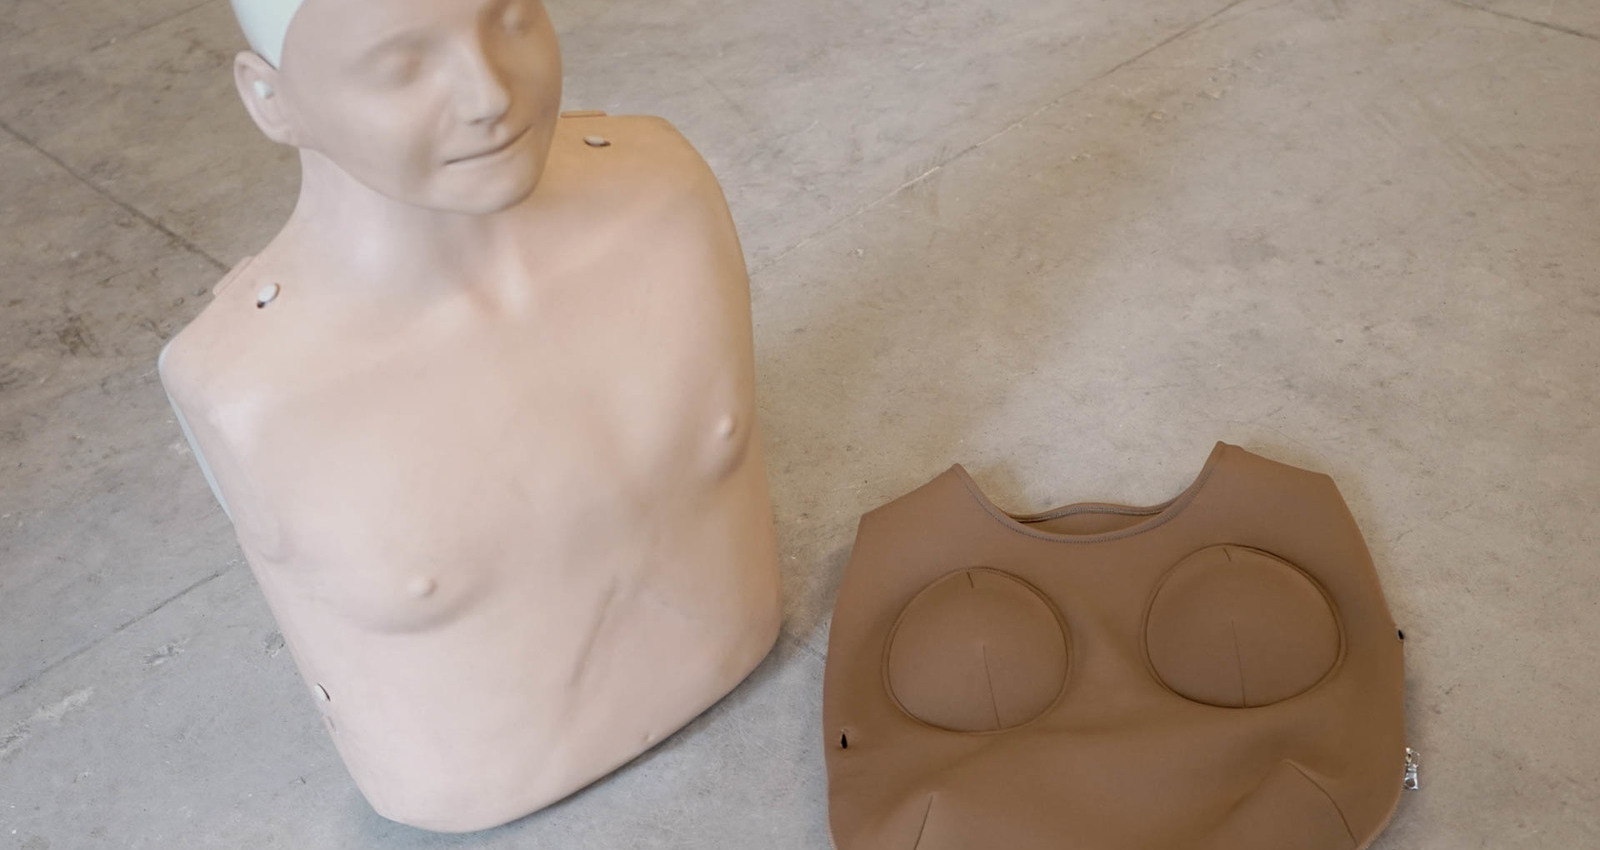 WoManikin: Designed to Save Women's Lives